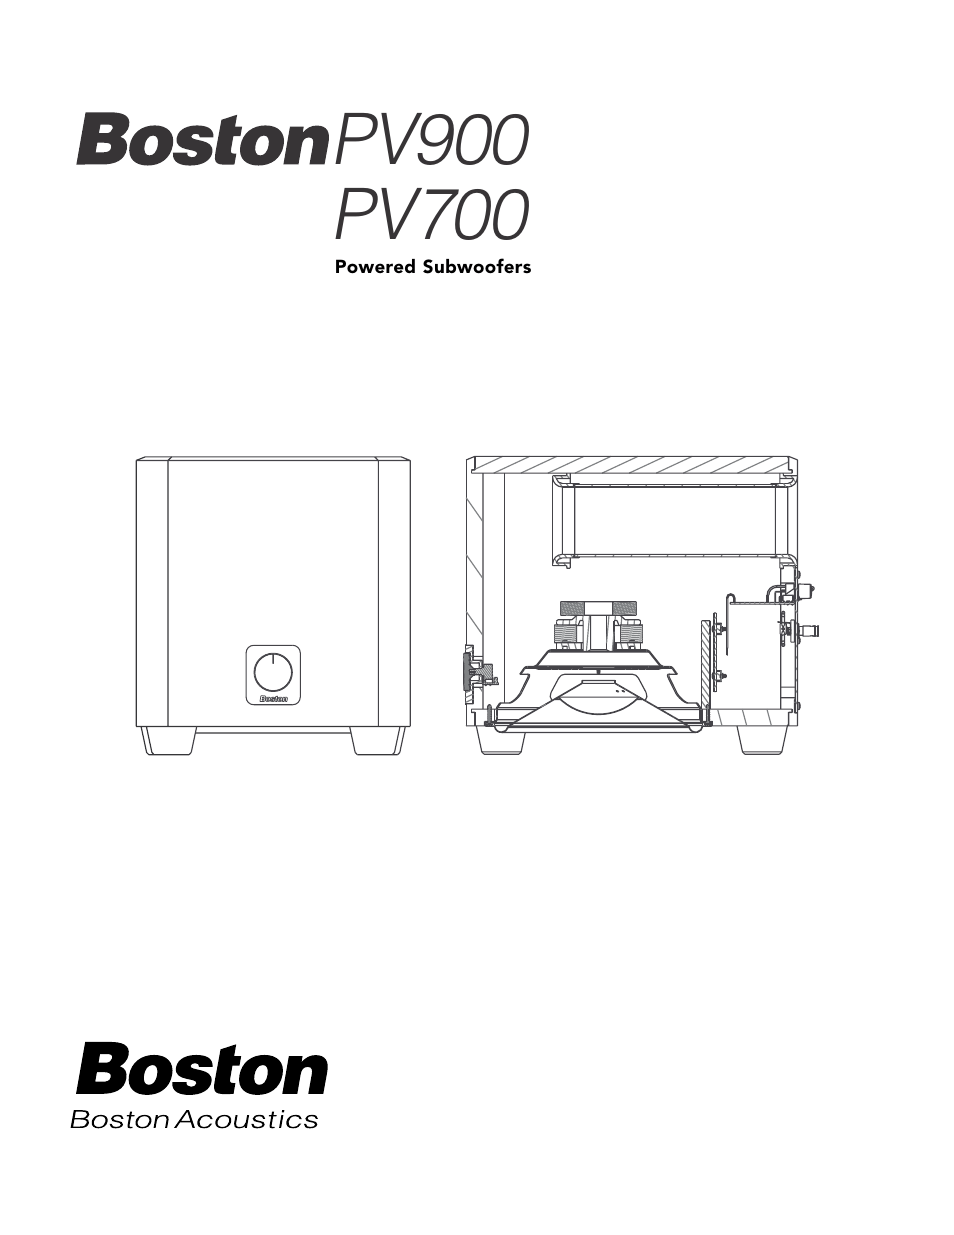 [WRG-7488] Boston Acoustics Subwoofer Wiring Diagram